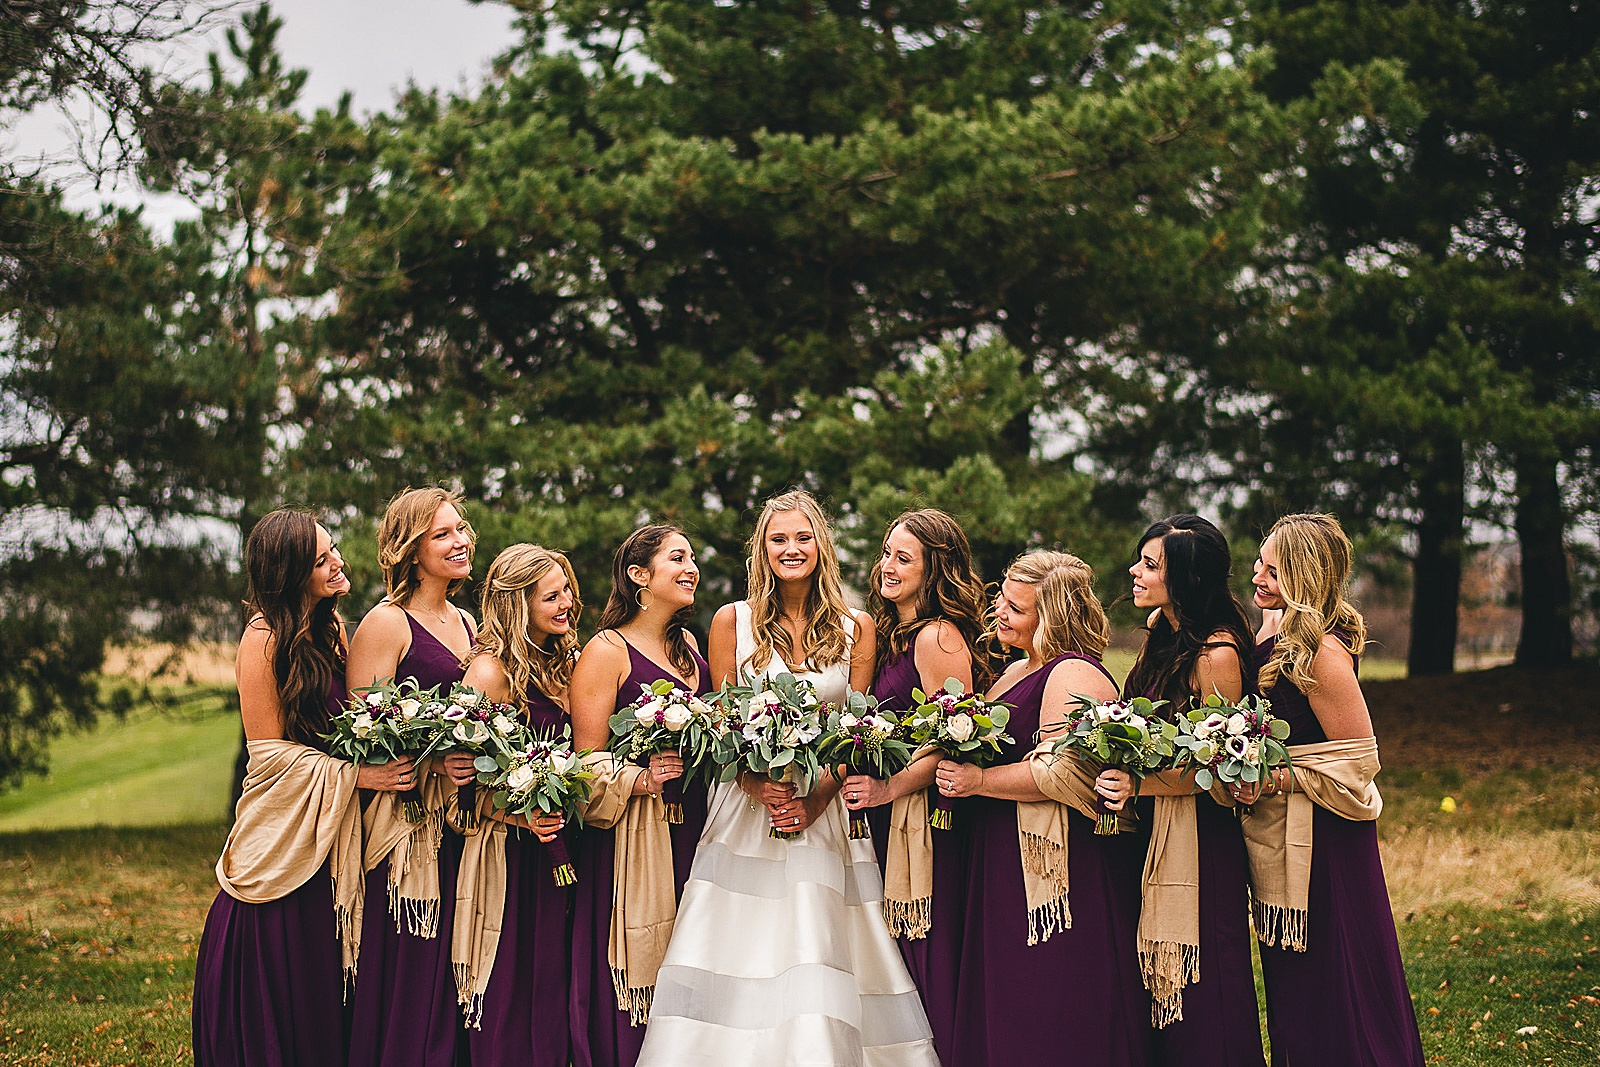 18 wedding photo ideas - The Glen Club Wedding Photos // Katie + Nick